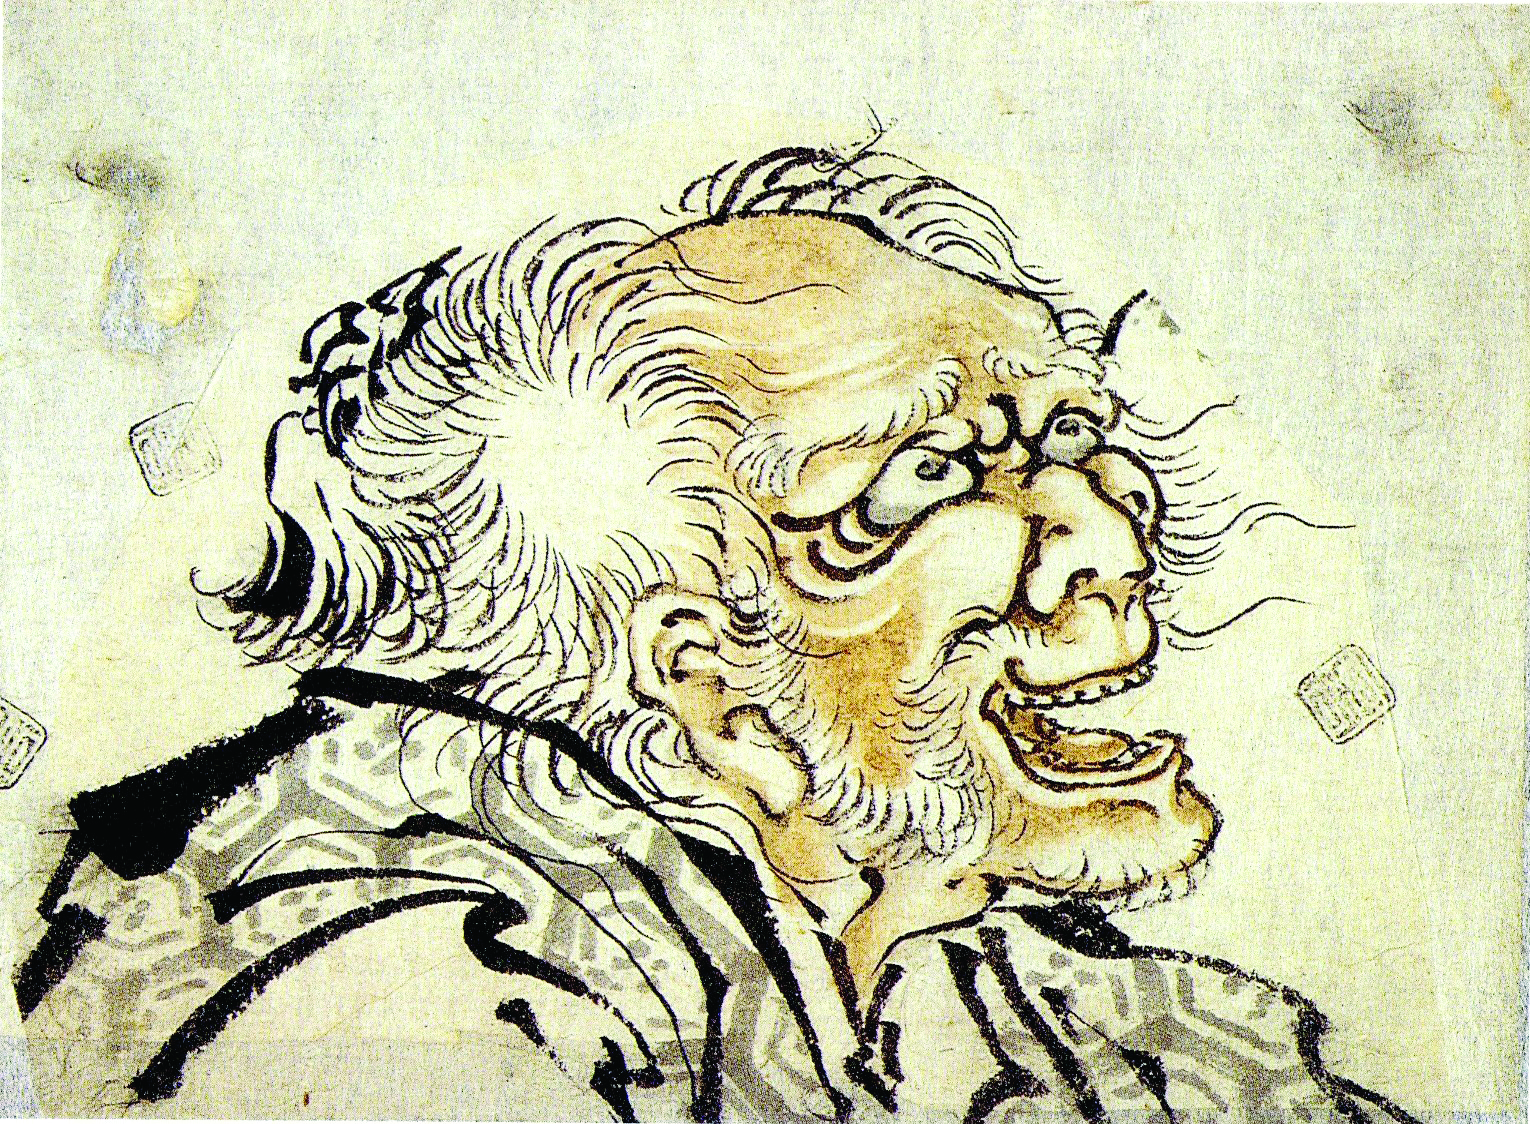 Katsushika Hokusai (1760–1849) Head of an old man. Ink and slight colour on paper, early 1840s. Collection Nationaal Museum van Wereldculturen, Coll. No. RV-2736-11/2.